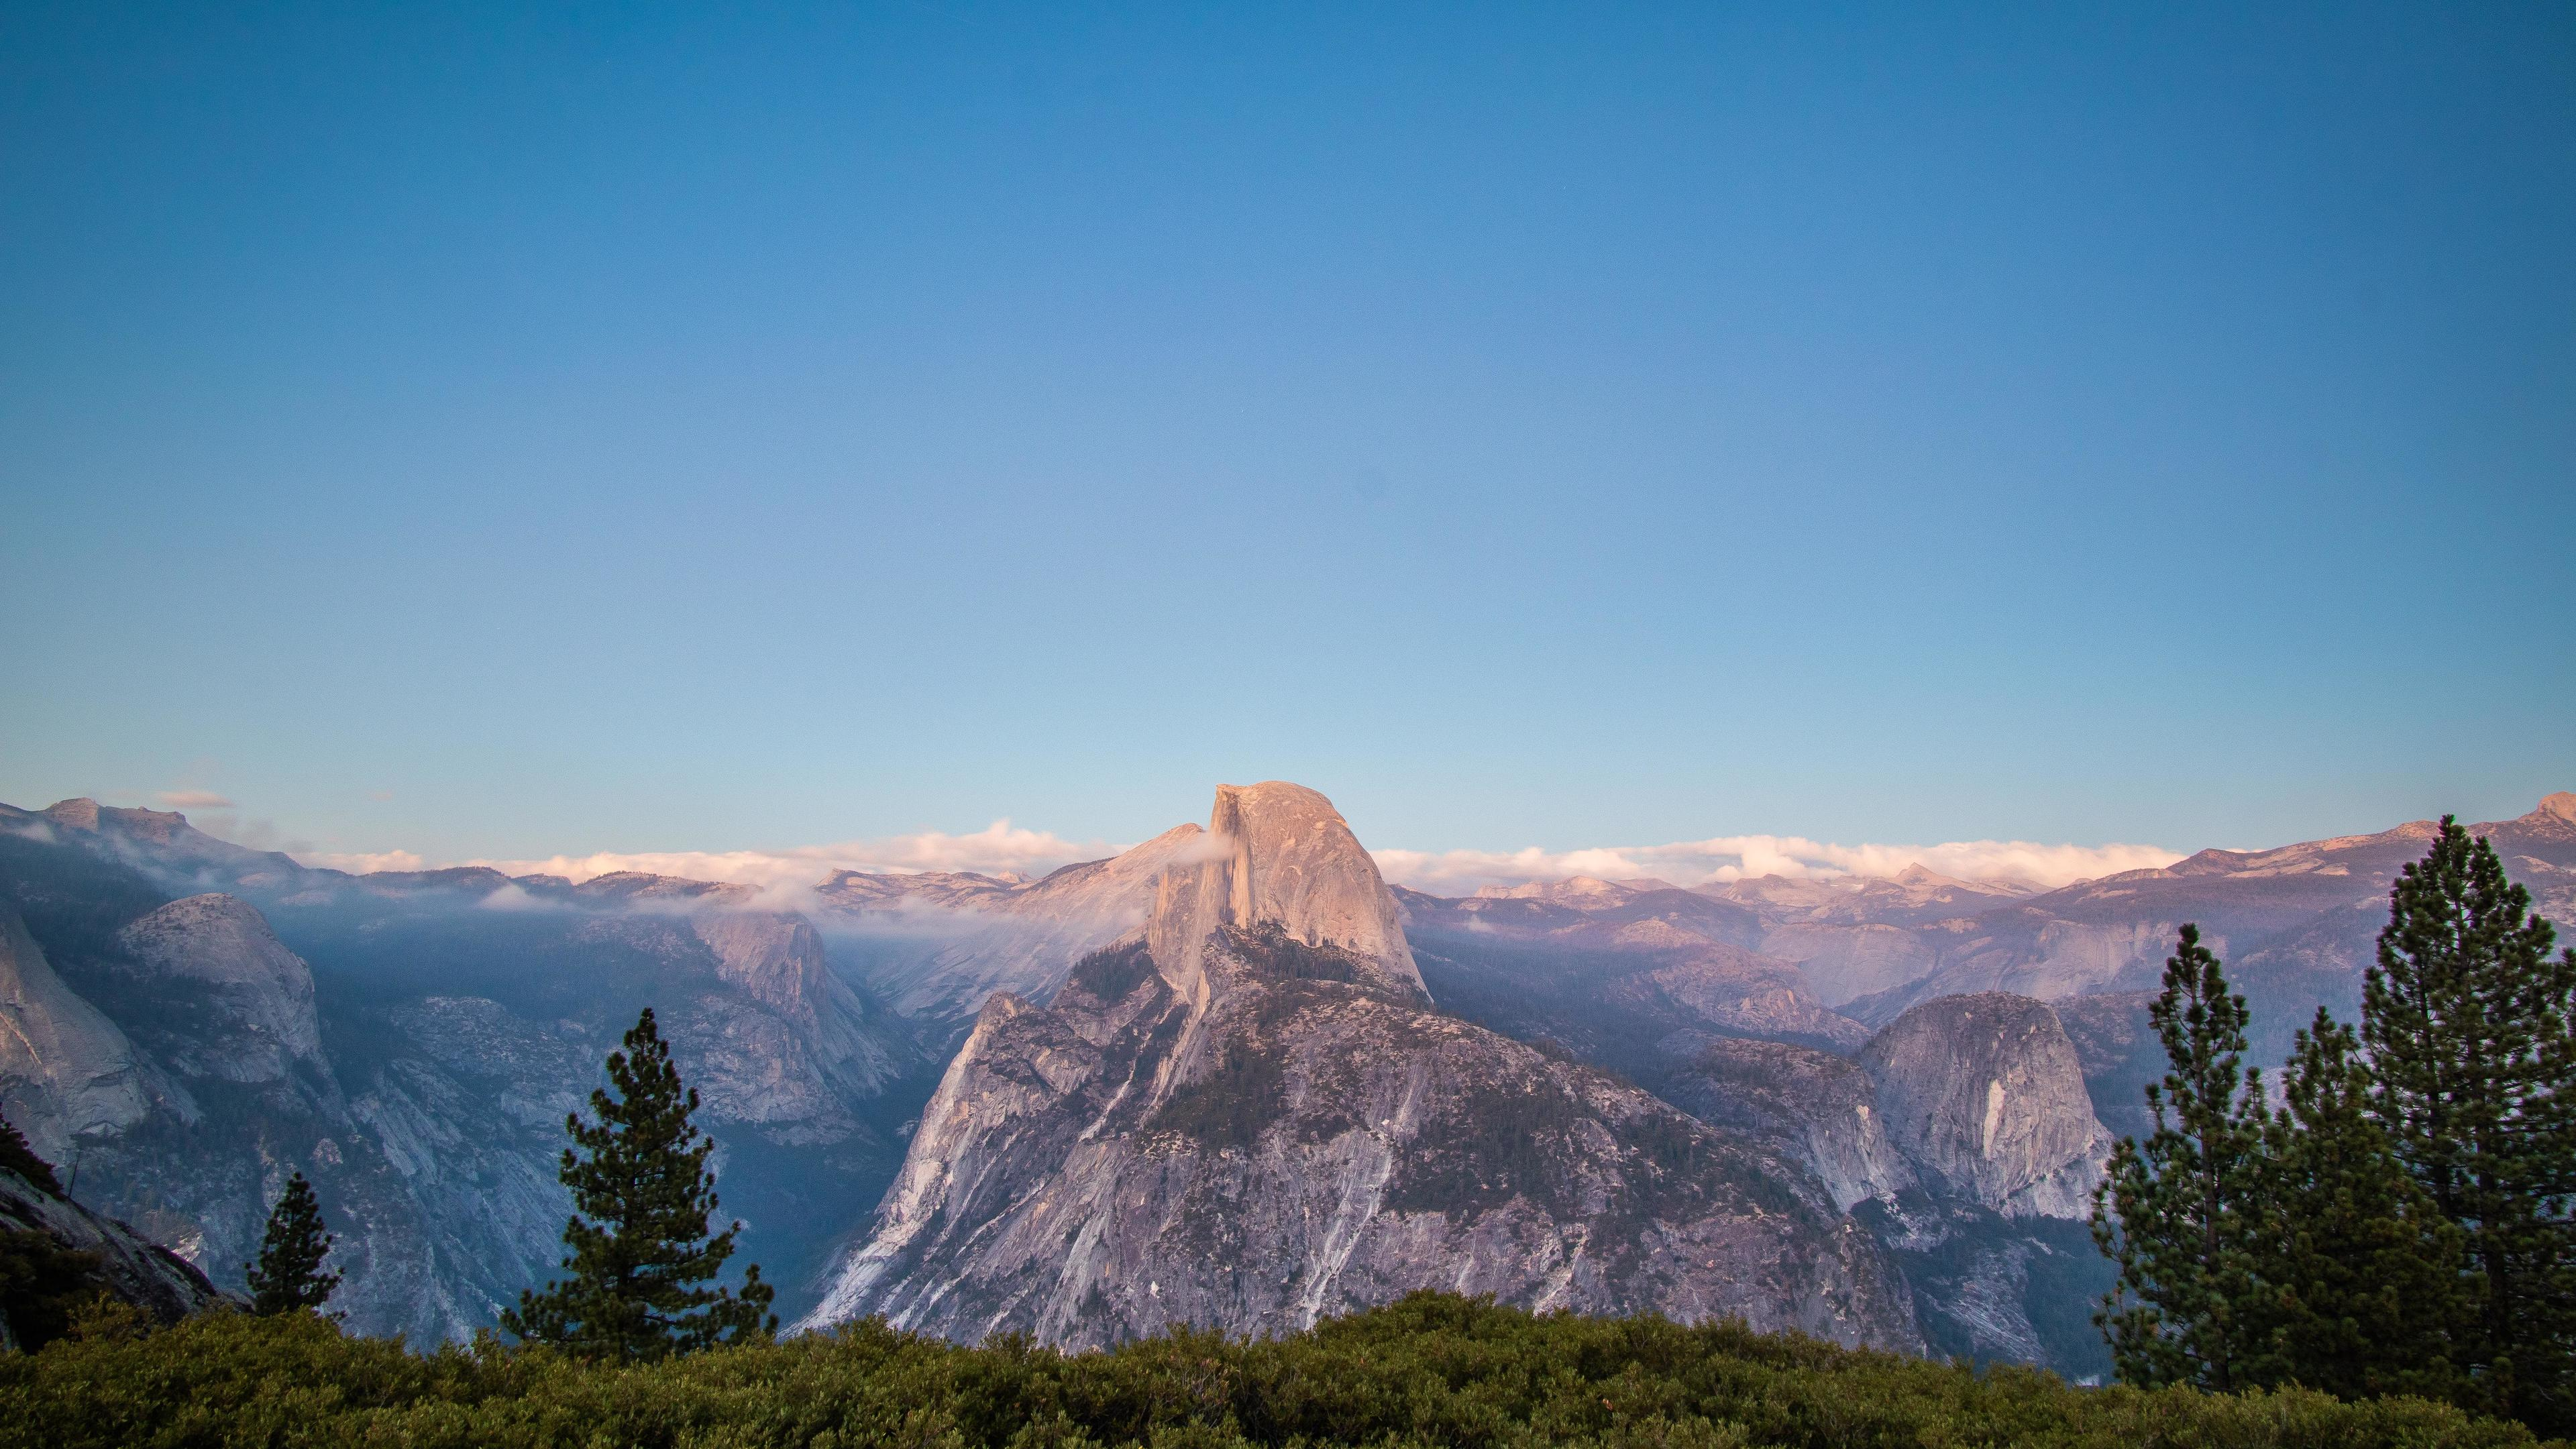 glacier point yosemite 4k 1551643045